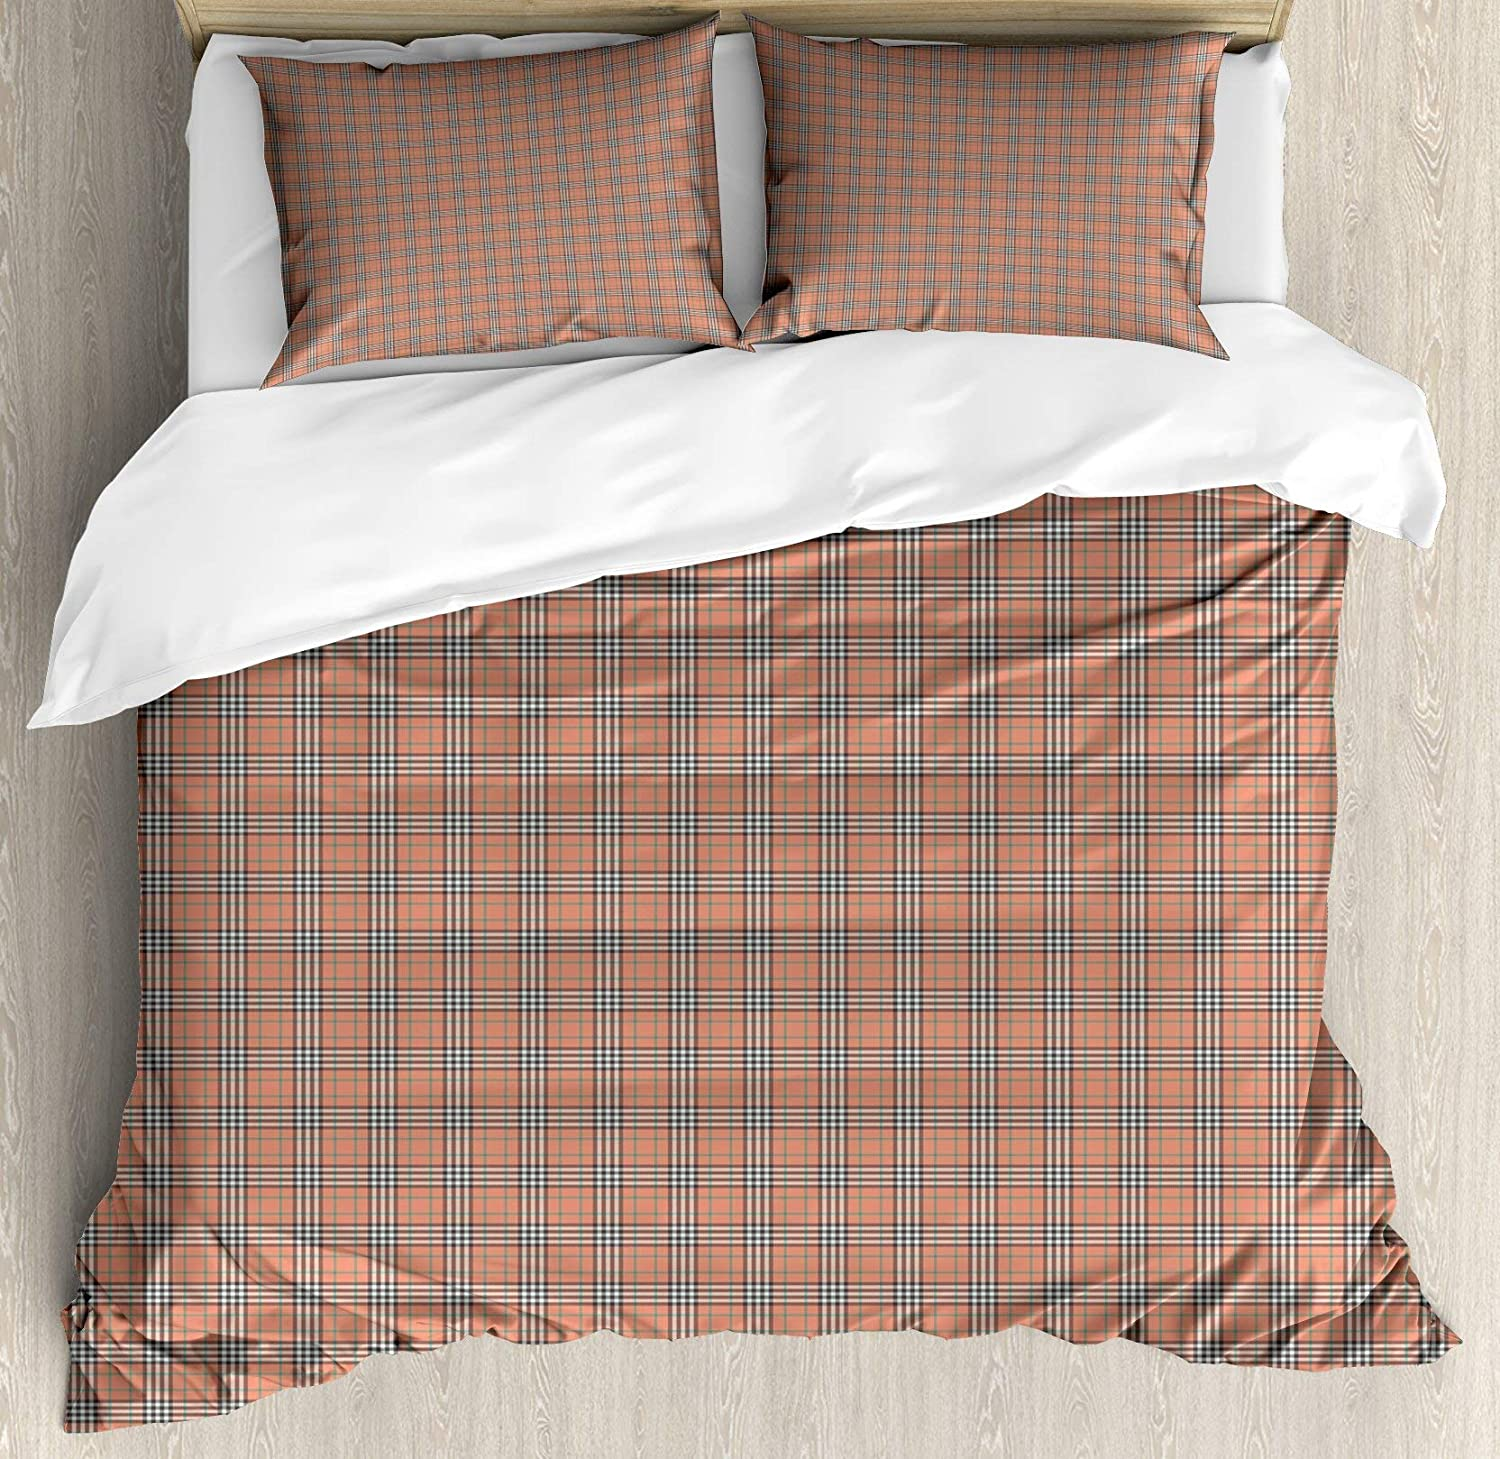 USOPHIA Plaid Full Size 4 Pieces Bed Sheets Set, Geometrical Tartan Pattern from Irish and Scottish Cultures Stripes Checks Floral Duvet Cover Set, Salmon Green Brown